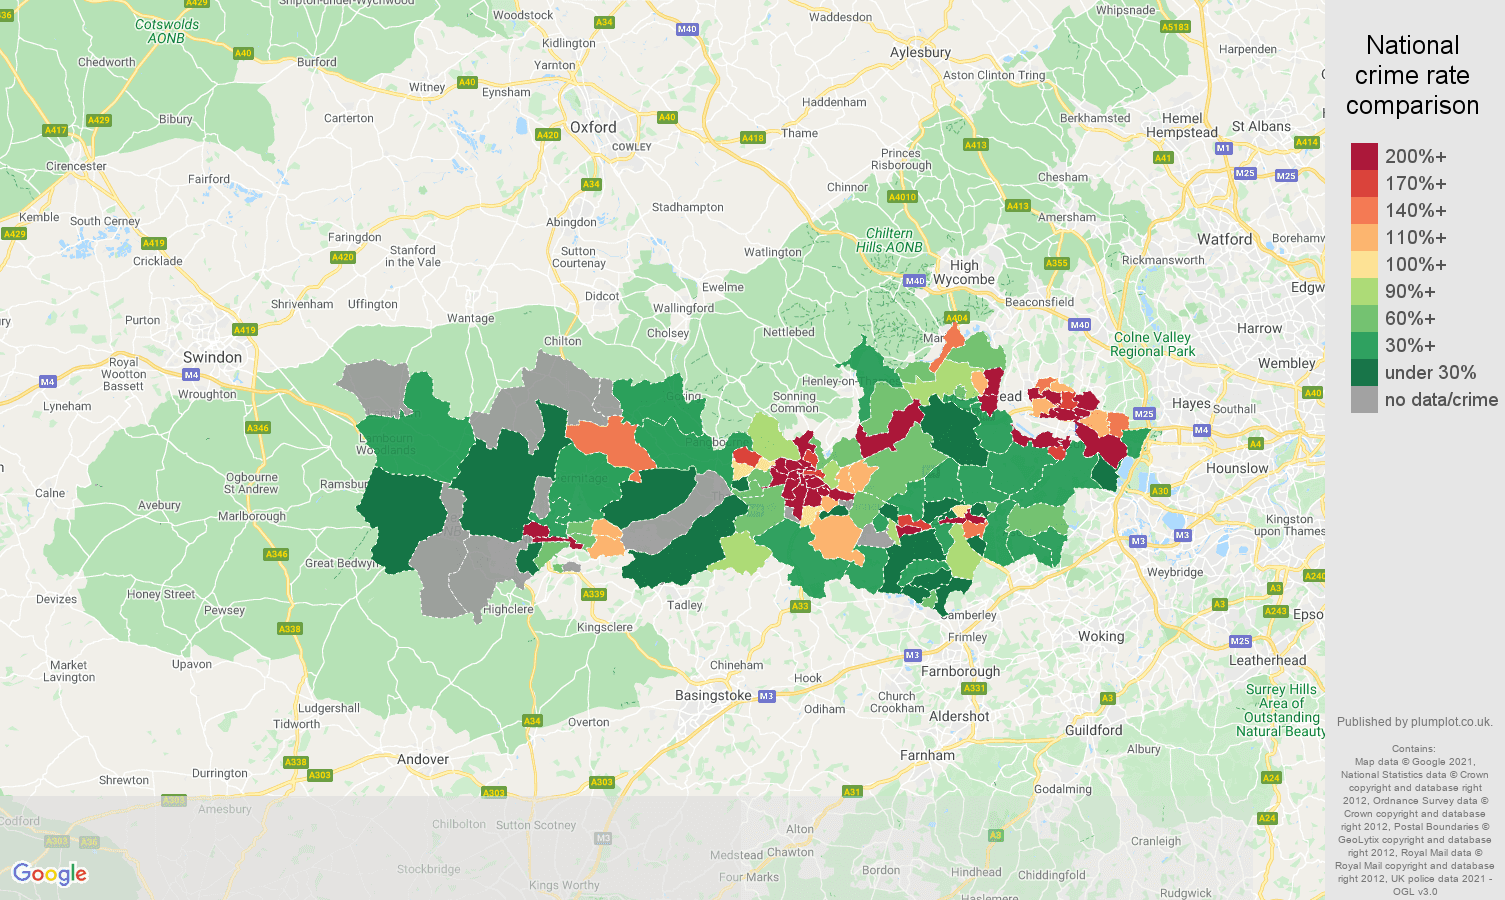 Berkshire bicycle theft crime rate comparison map